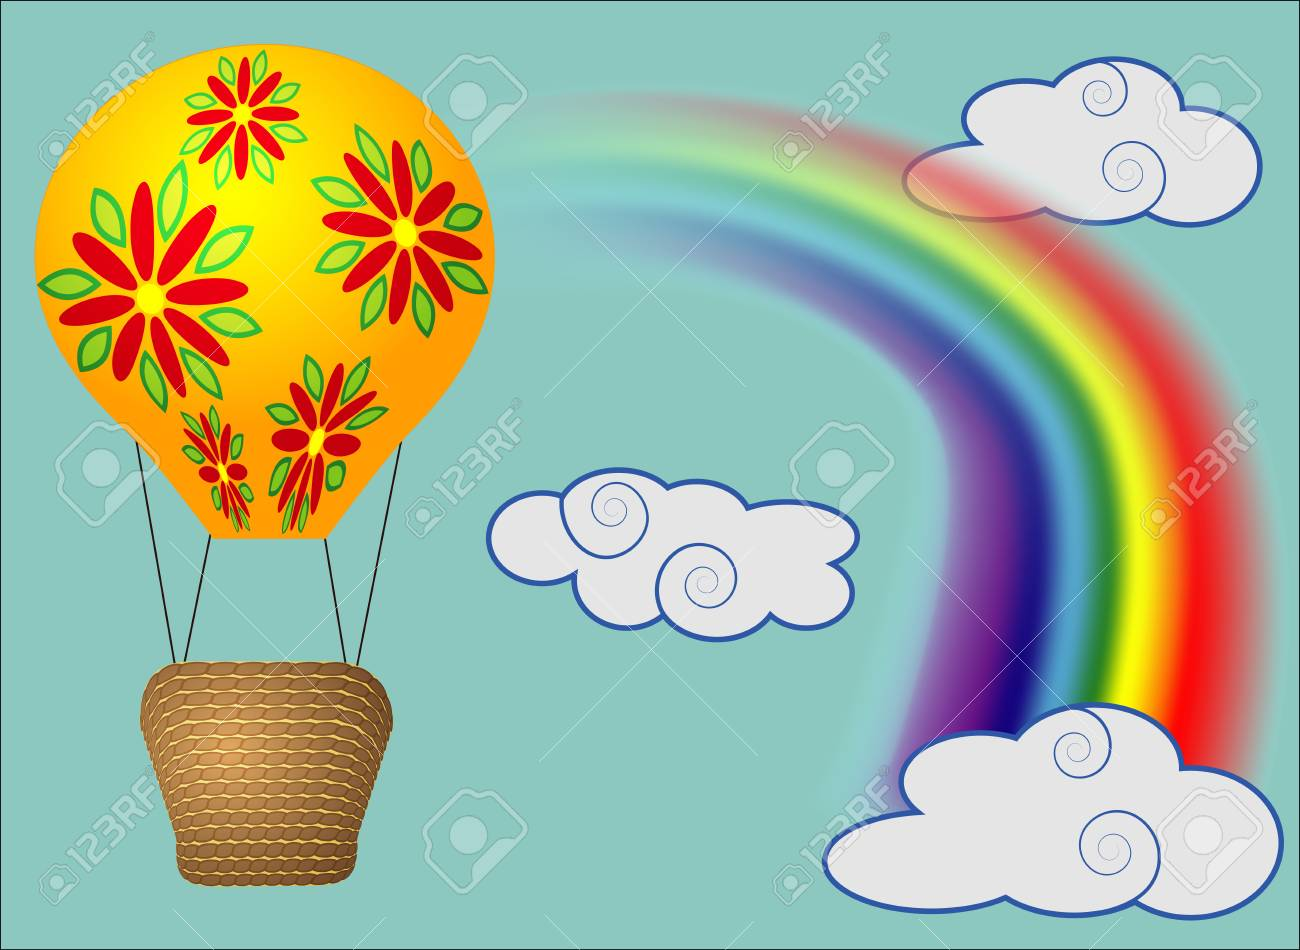 Bright, cartoon, high volume balloon with a basket in the sky